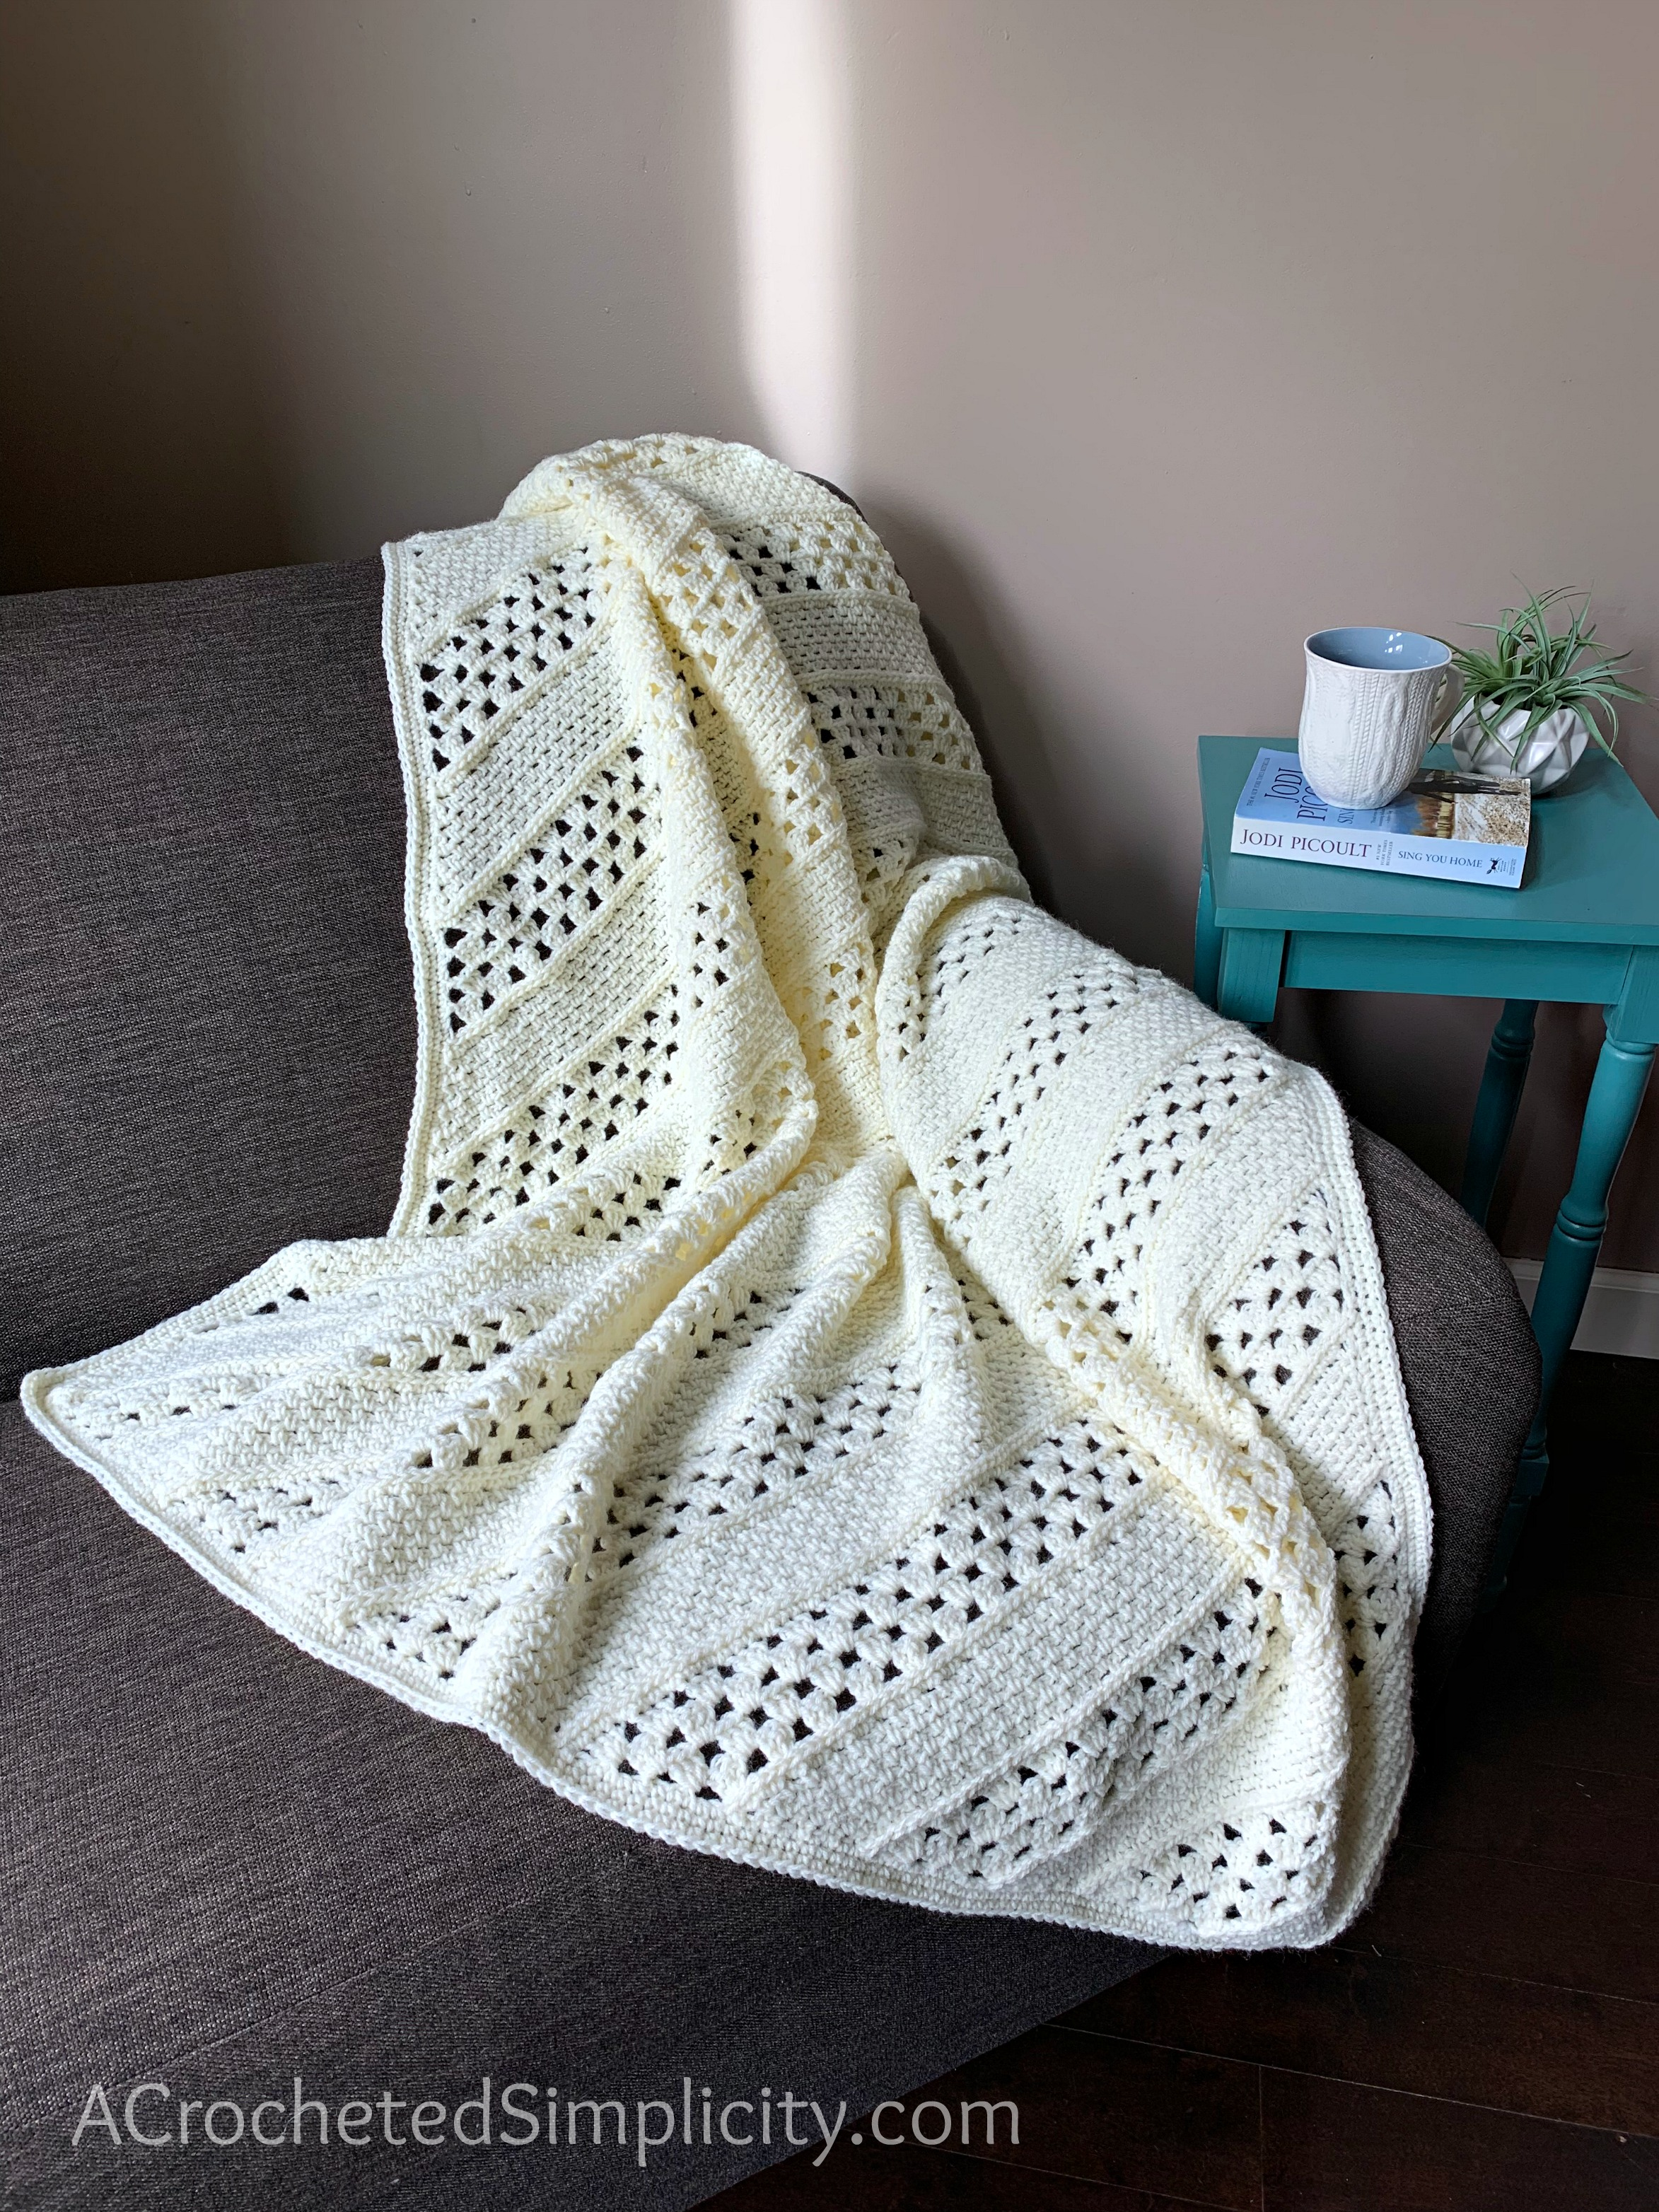 Free Crochet Blanket Pattern - On the Bias Square Afghan by A Crocheted Simplicity #crochetblanket #crochetafghan #freecrochetpattern #freecrochetblanketpattern #handmadeblanket #homemade #lionbrandwooleasecakes